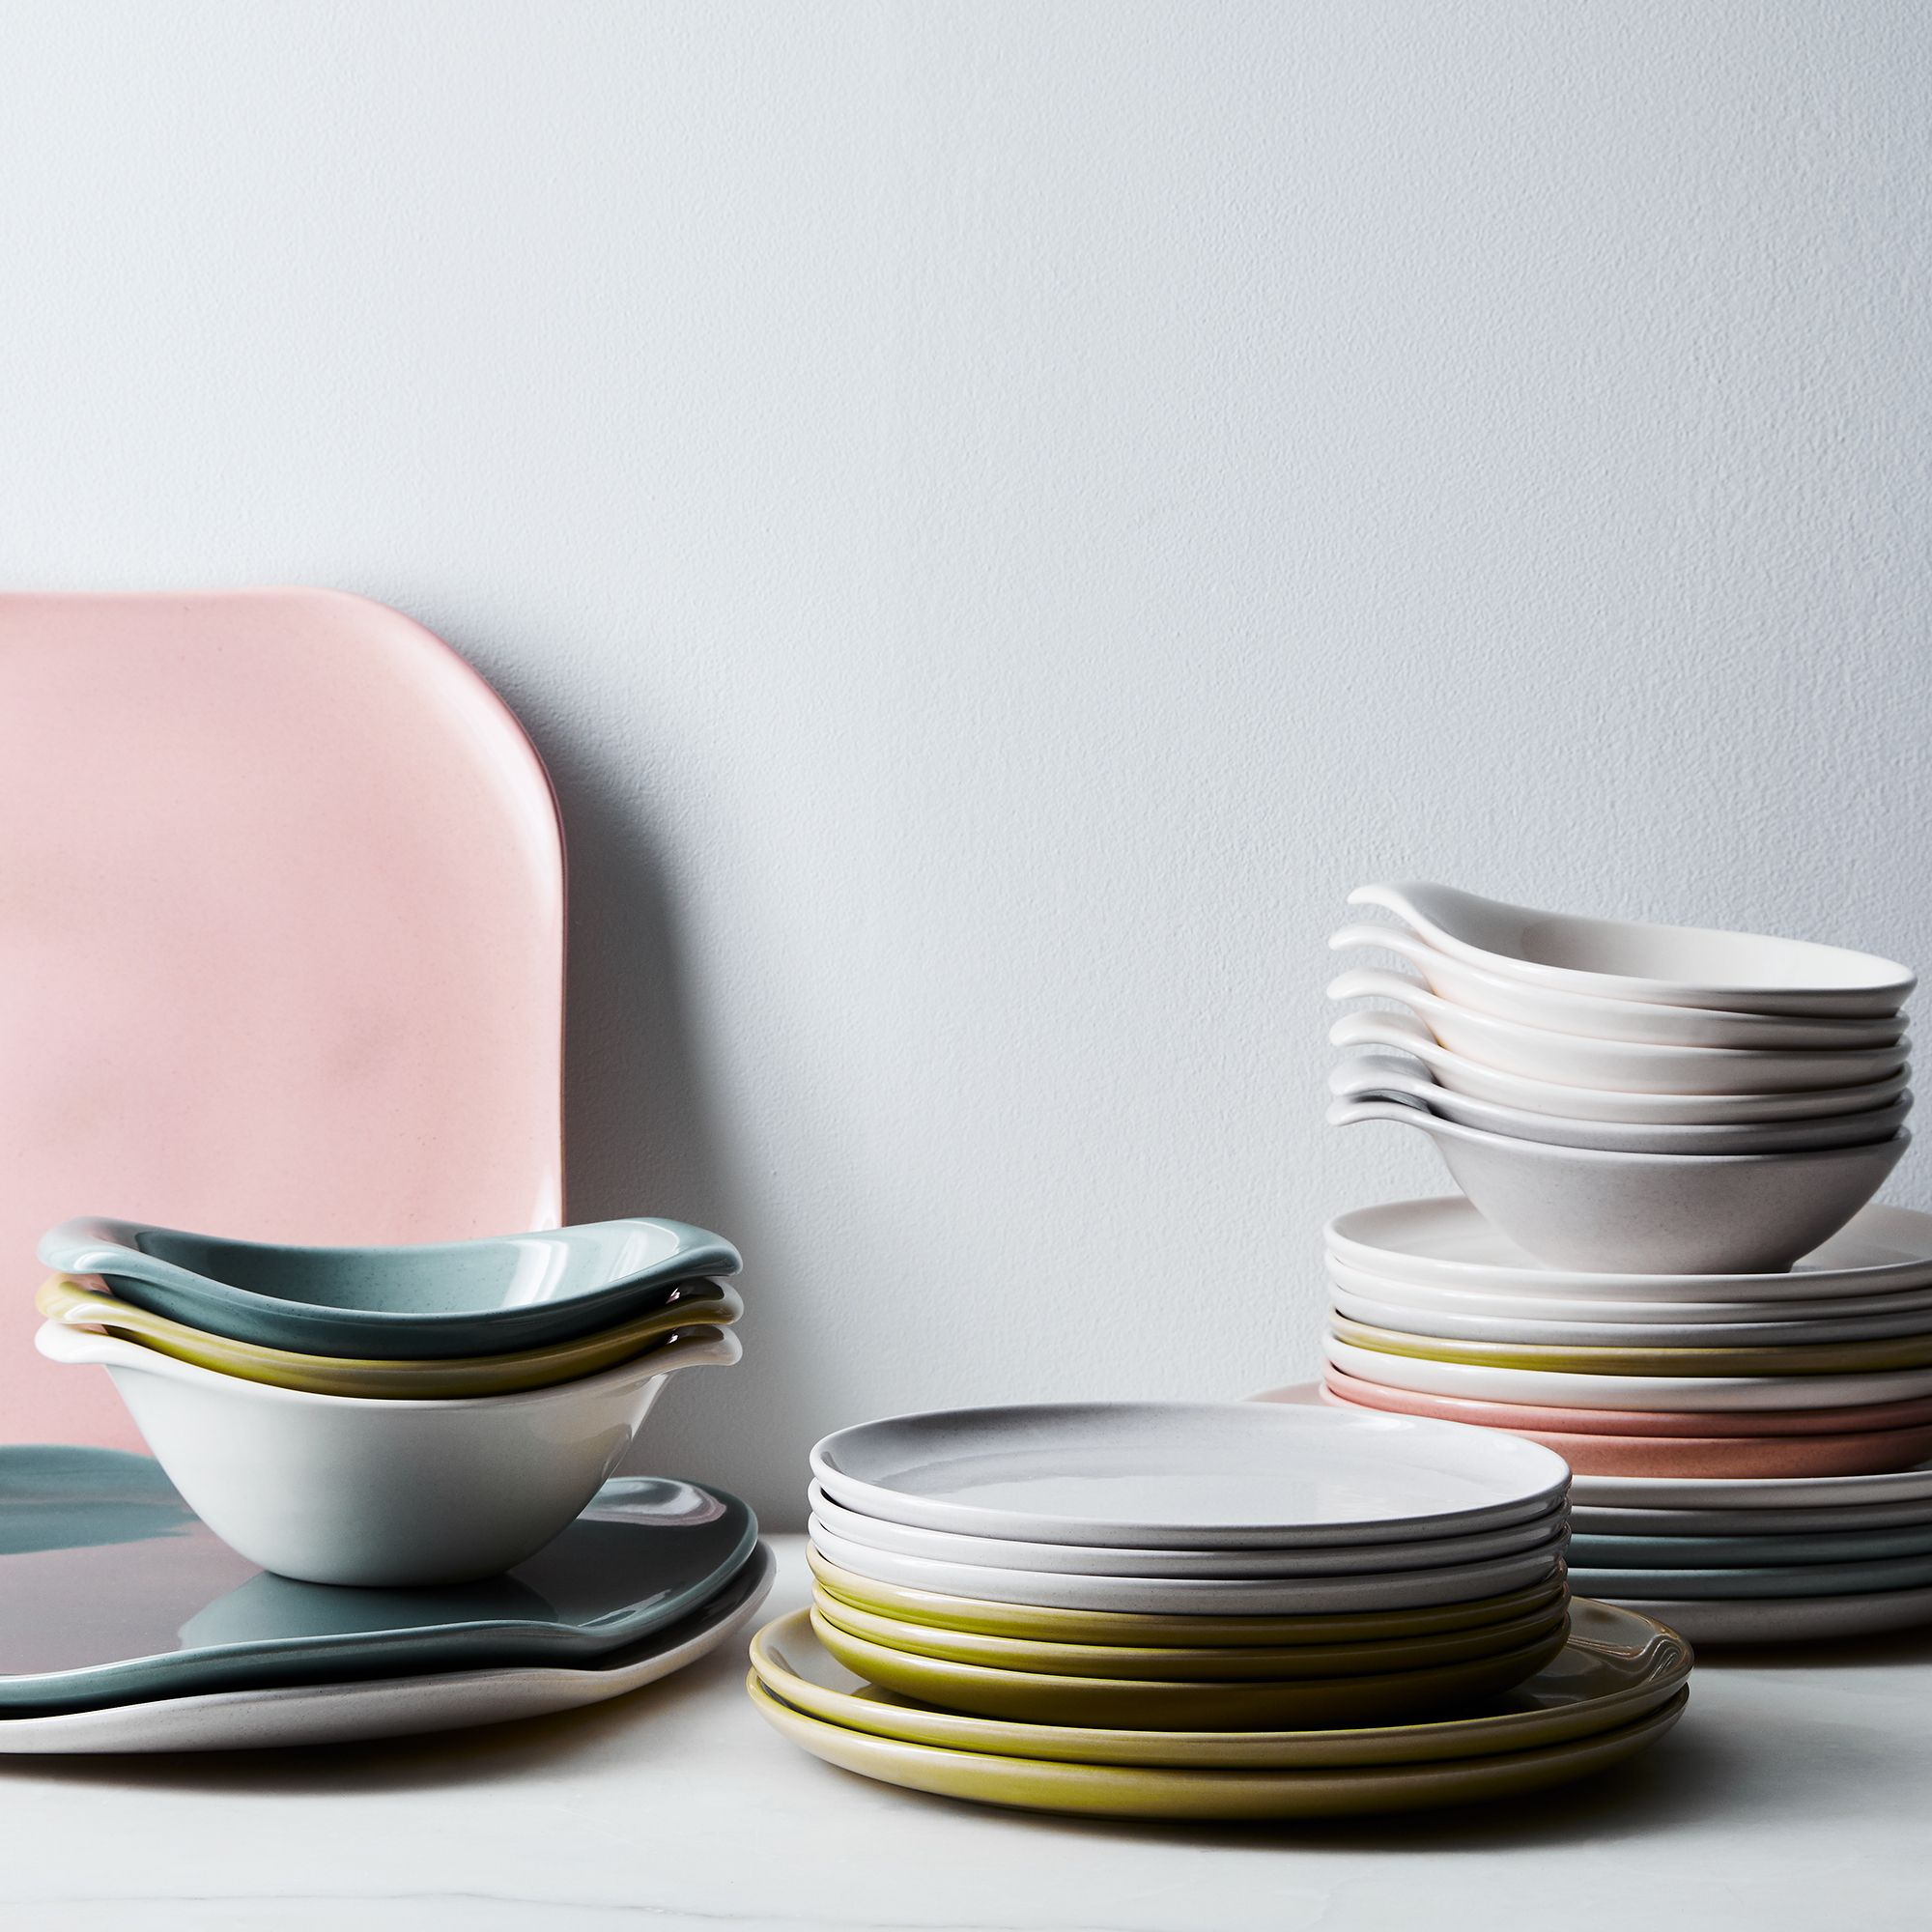 Stacks of Russel Wright dinnerware in a variety of colors